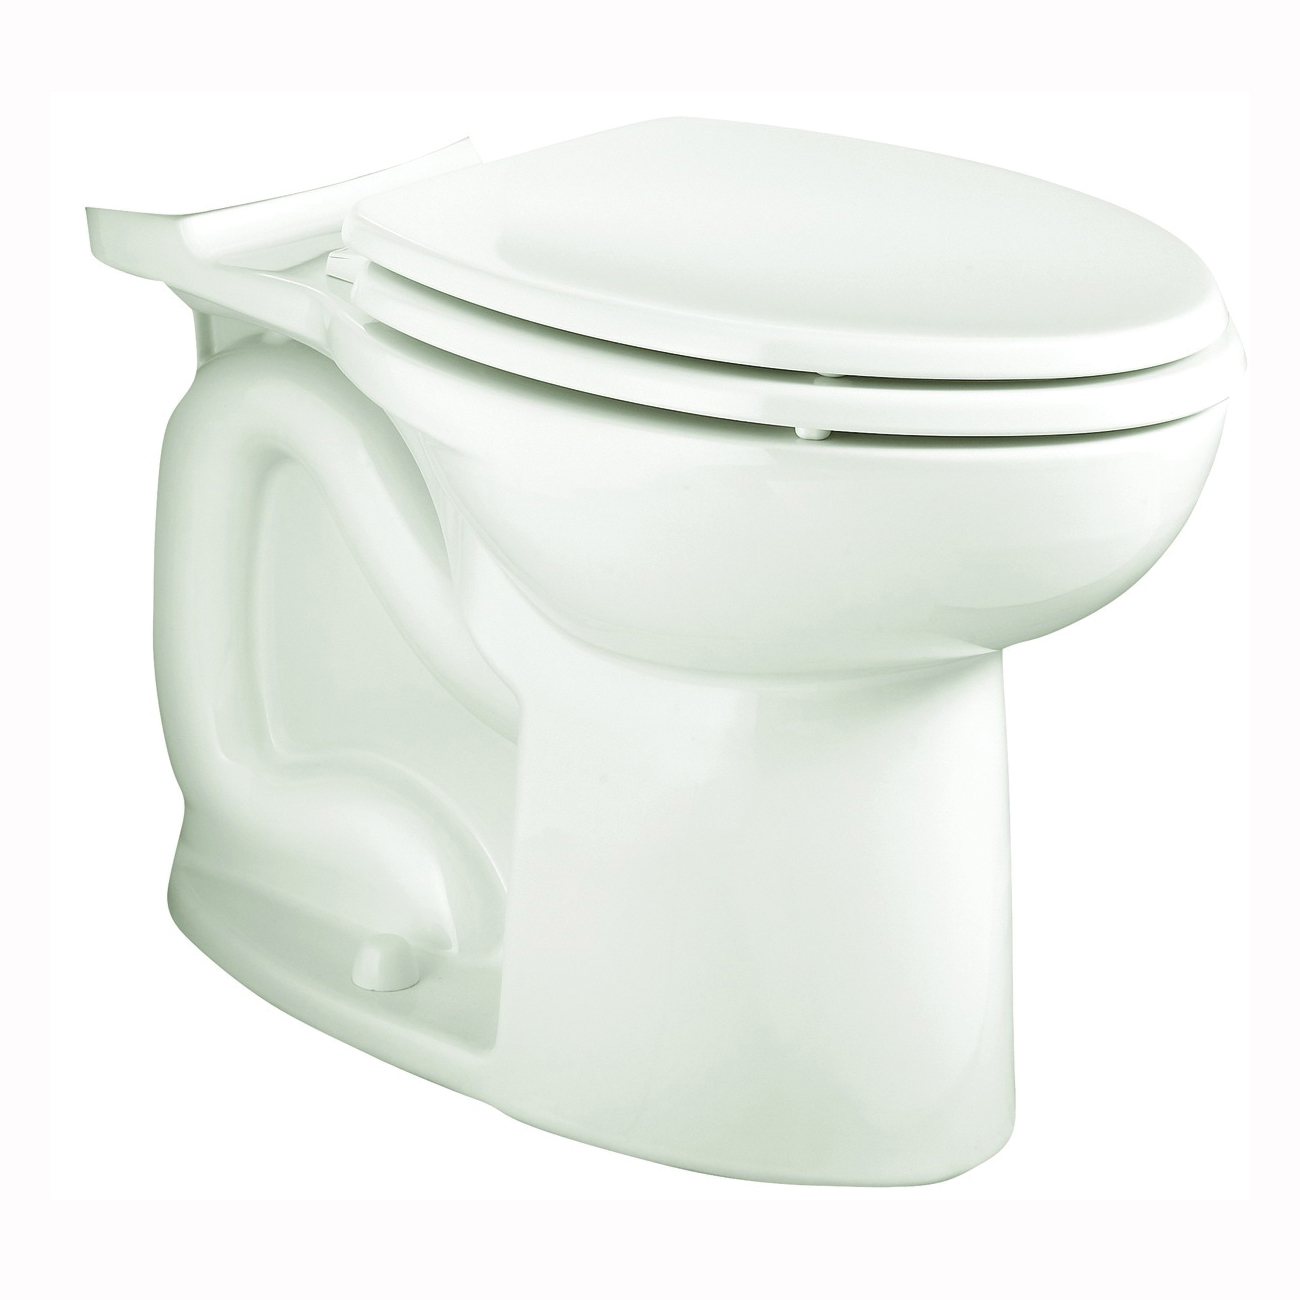 Picture of American Standard Cadet 3 Series 3717D001.020 Toilet Bowl, Round, 1.6 gpf Flush, 12 in Rough-In, Vitreous China